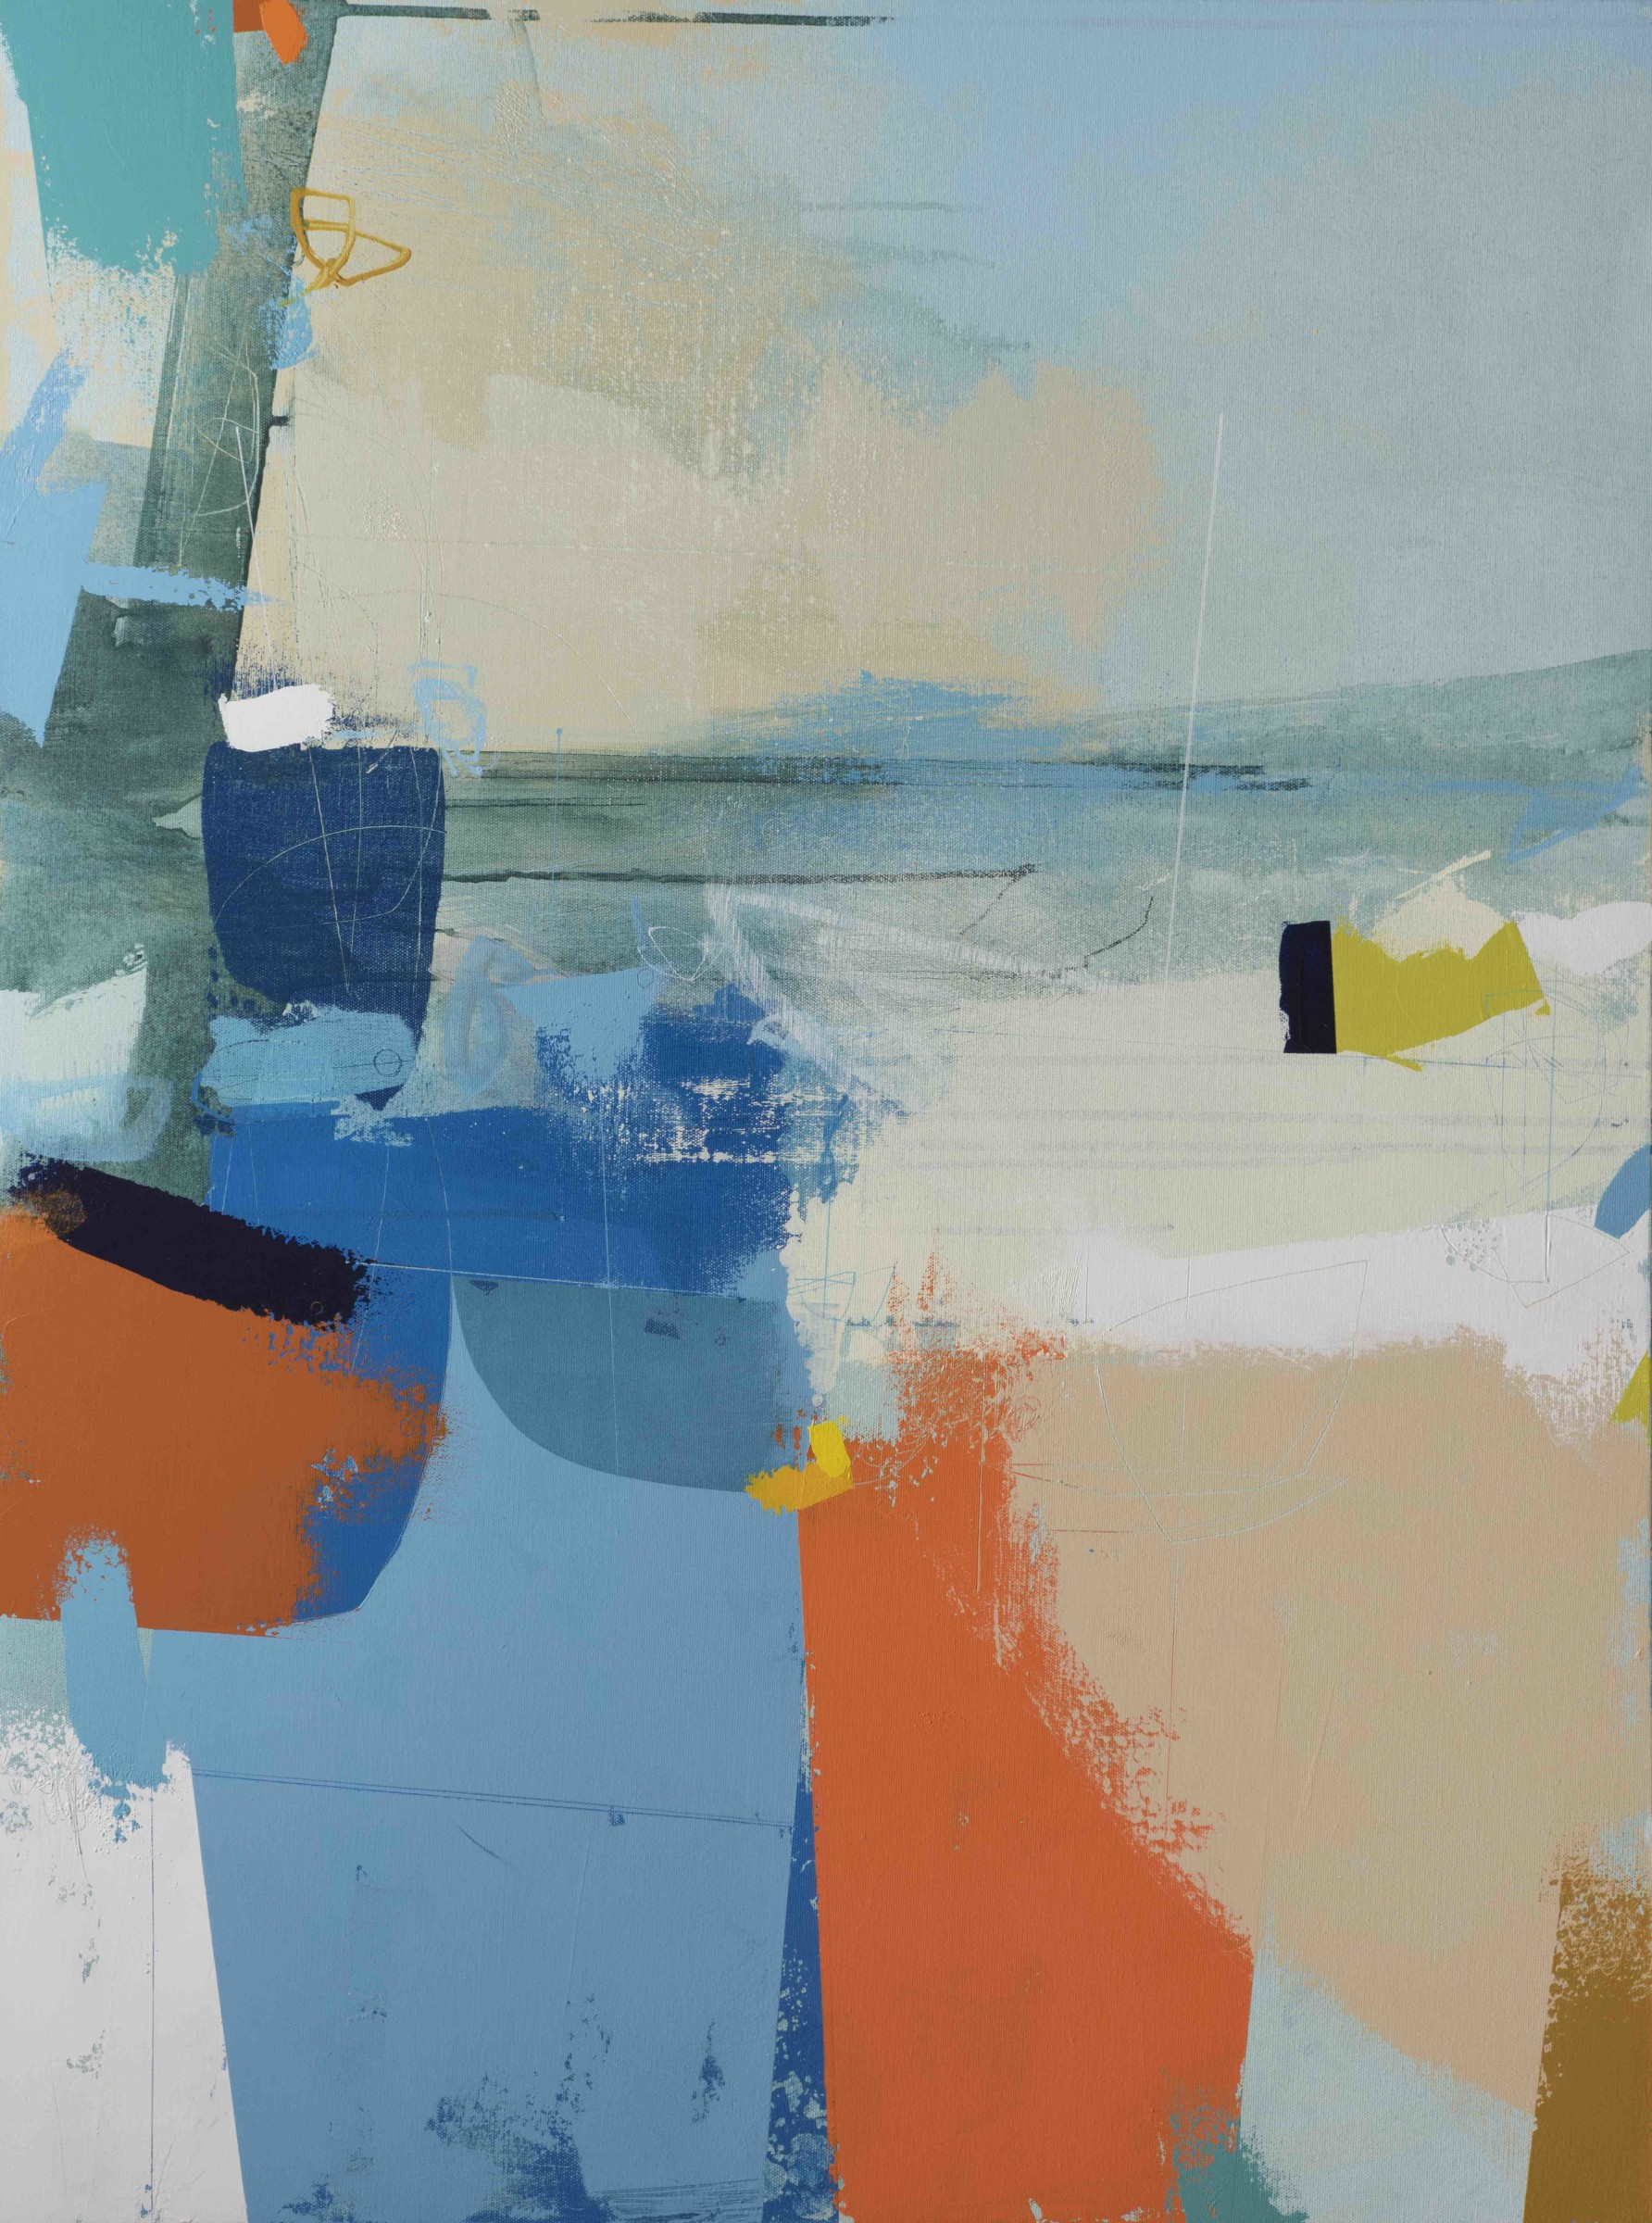 <span class=&#34;link fancybox-details-link&#34;><a href=&#34;/artists/77-andrew-bird/works/5828-andrew-bird-halcyon-2018/&#34;>View Detail Page</a></span><div class=&#34;artist&#34;><strong>Andrew Bird</strong></div> <div class=&#34;title&#34;><em>Halcyon</em>, 2018</div> <div class=&#34;signed_and_dated&#34;>signed</div> <div class=&#34;medium&#34;>acrylic on canvas</div> <div class=&#34;dimensions&#34;>101.5 x 76 cm<br /> 40 x 29 7/8 inches</div><div class=&#34;copyright_line&#34;>OwnArt: £ 250 x 10 Months, 0% APR + deposit £ 450</div>